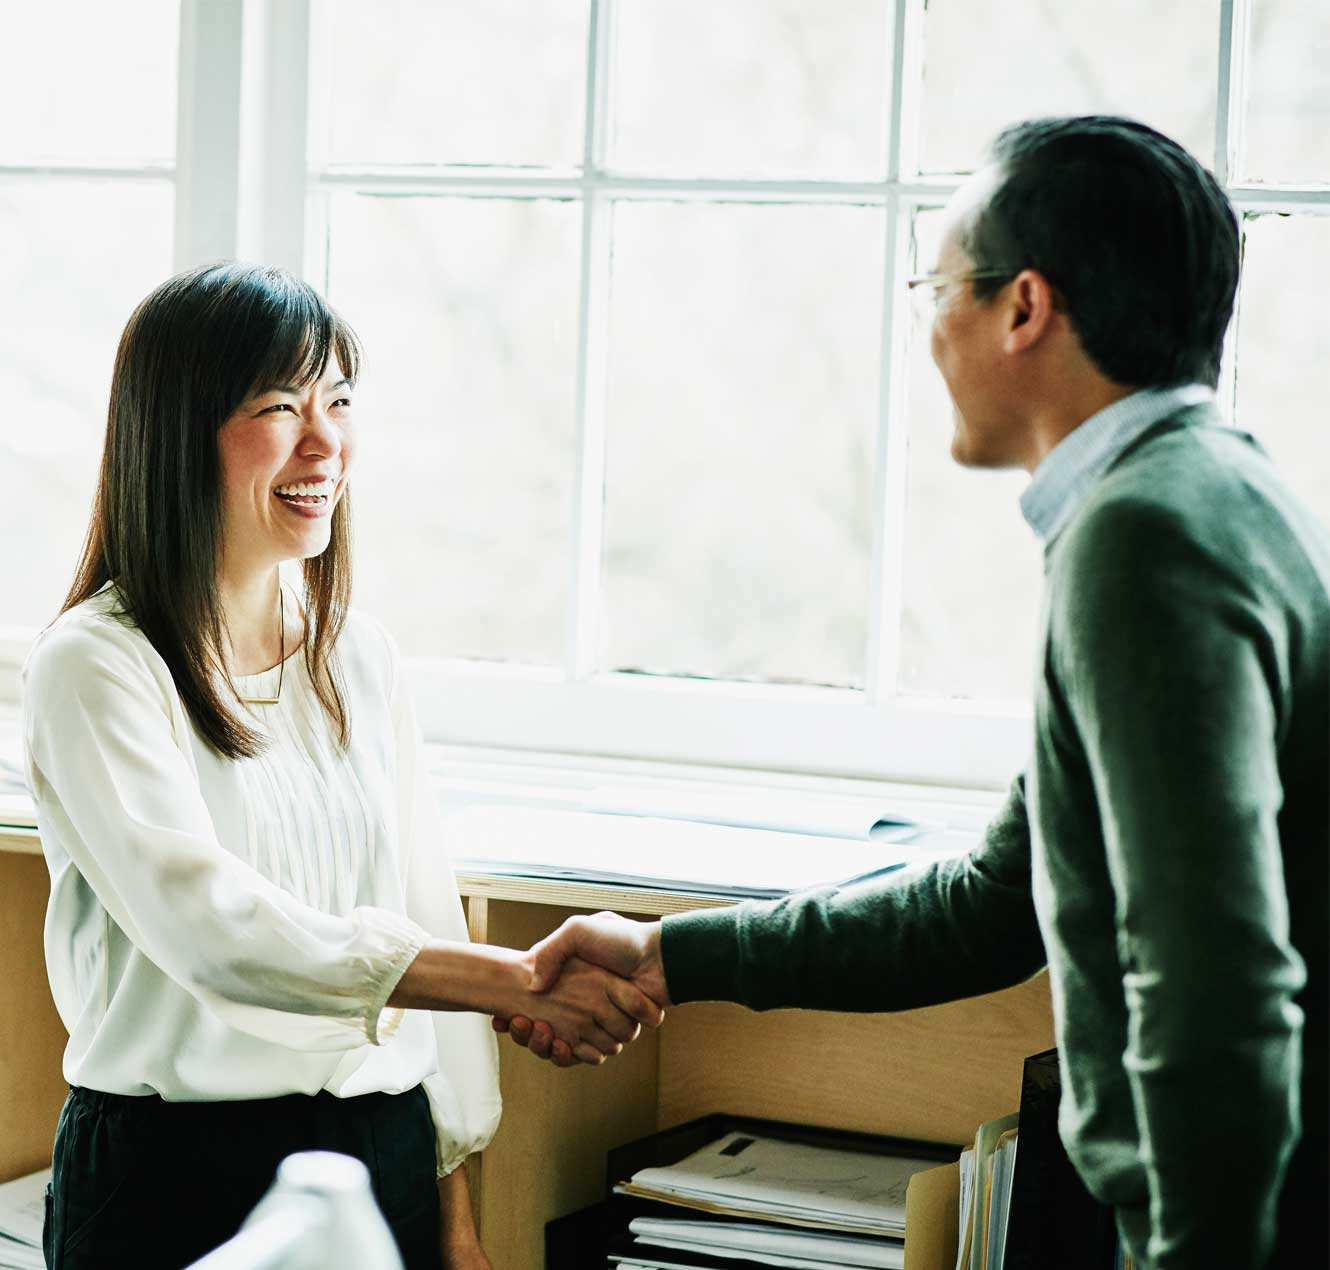 business woman shaking hands with a customer due to positive outcomes and increased customer loyalty enabled by Oracle CX cloud